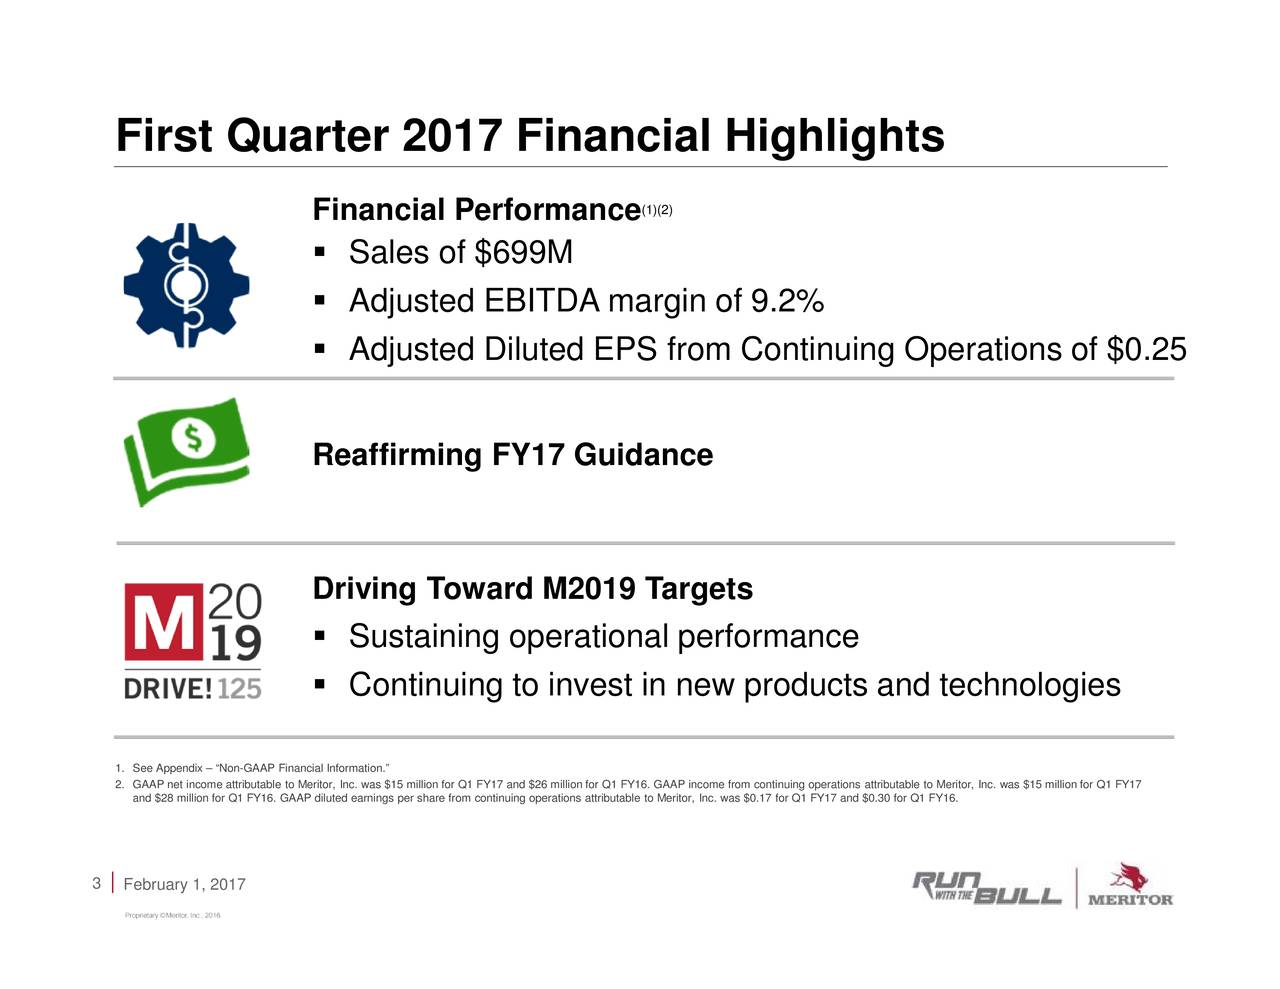 es 16. Meritor, Inc. was $15 million for Q1 FY17 ritor, Inc. was $0.17 for Q1 FY17 and $0.30 for Q1 FY (1)(2) GAAP income from continuing operations attributable to 5 million for Q1 FY17 and $26 million for Q1 FY16.to Me SaleAsdofdtudseMdITilAtmdaErgSusrtaintiguipgerationasltnrformapnrcd FinancialPerformaReaffirminDriing7Towuidadnce2019 Targets and $2February 1, 2017 FY16. GAAP diluted earnings p First Quarter 2017 Financial H 1..GAneo|GbPltalornw s $1 3